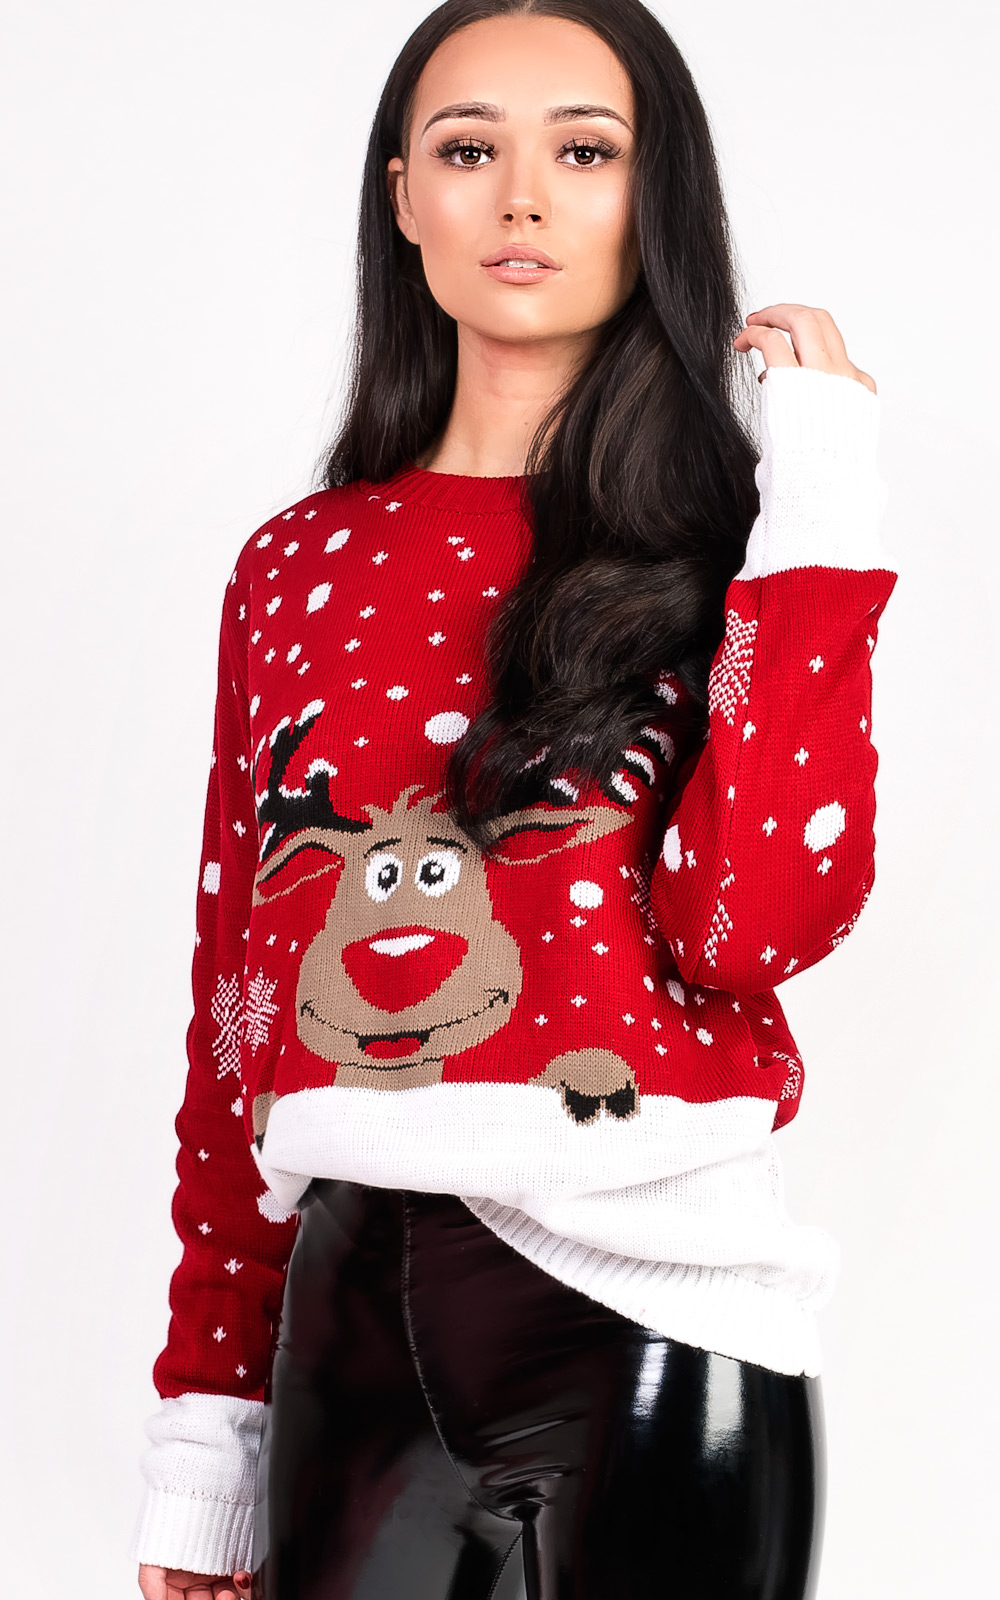 a8a7f65593 IKRUSH Women s Noel Oversized Slogan Christmas Jumper in RED Size M ...